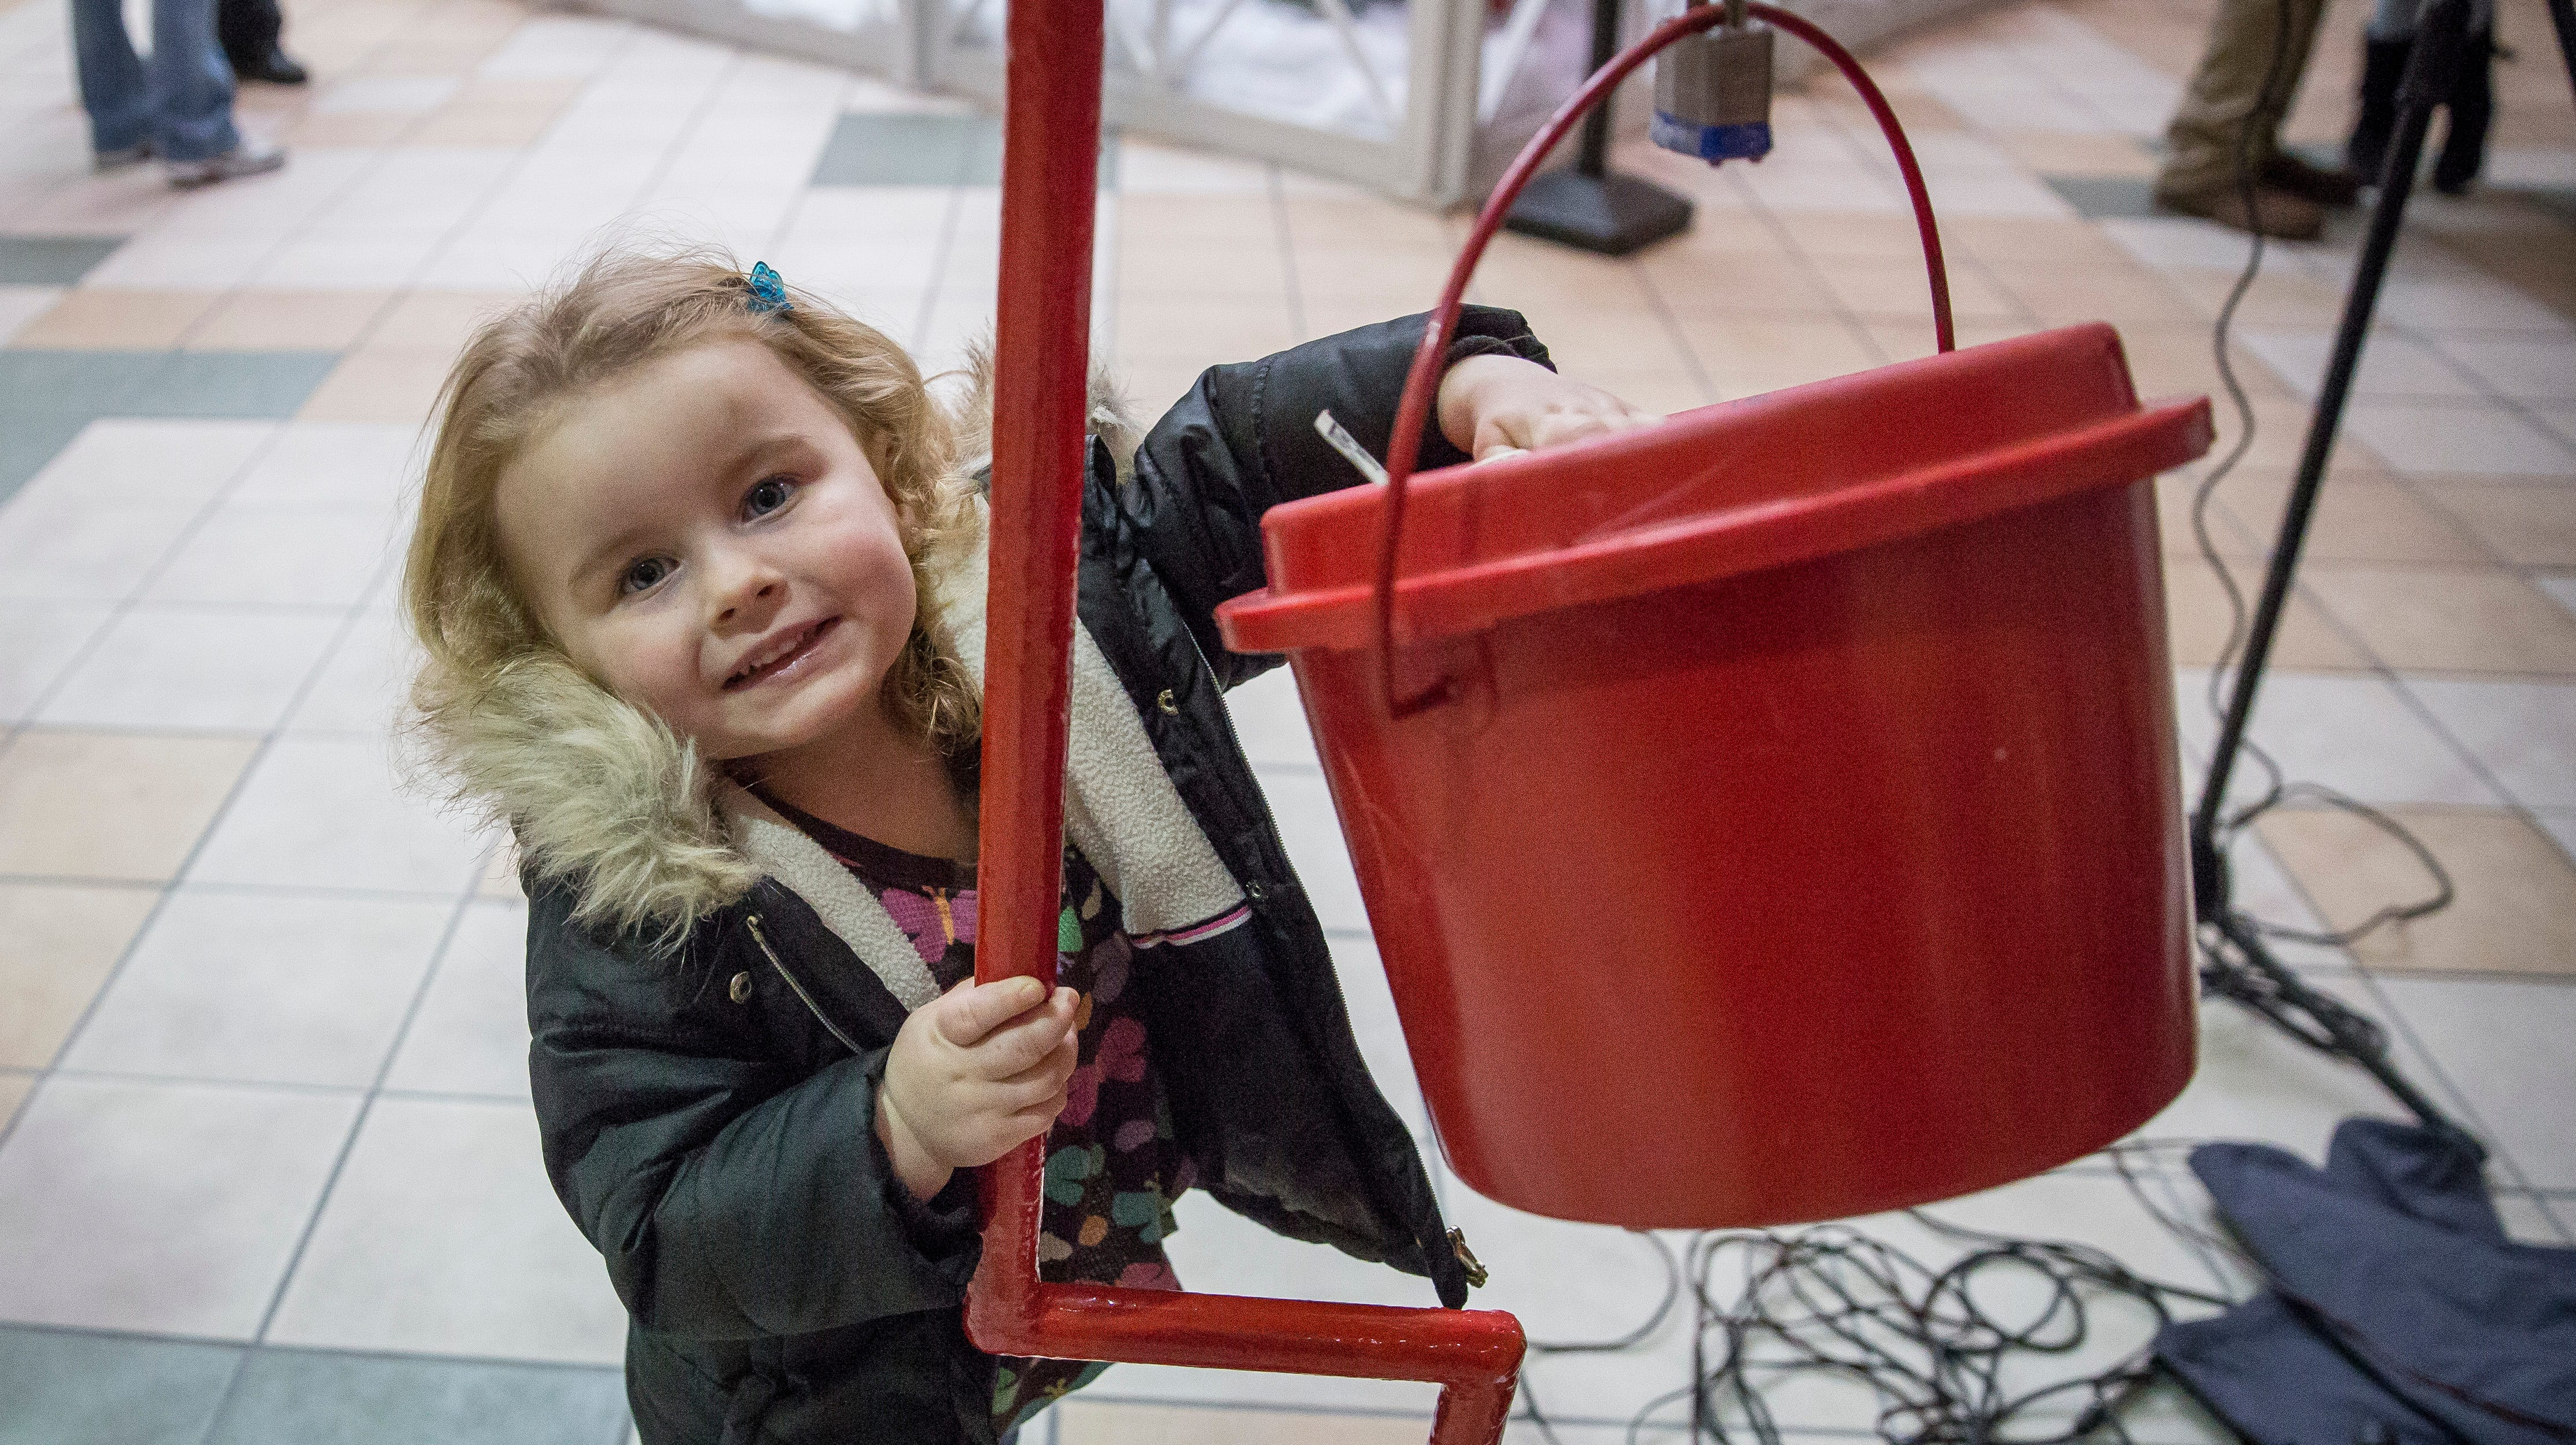 Salvation Army's Red Kettle Campaign Kickoff at the Muncie Mall